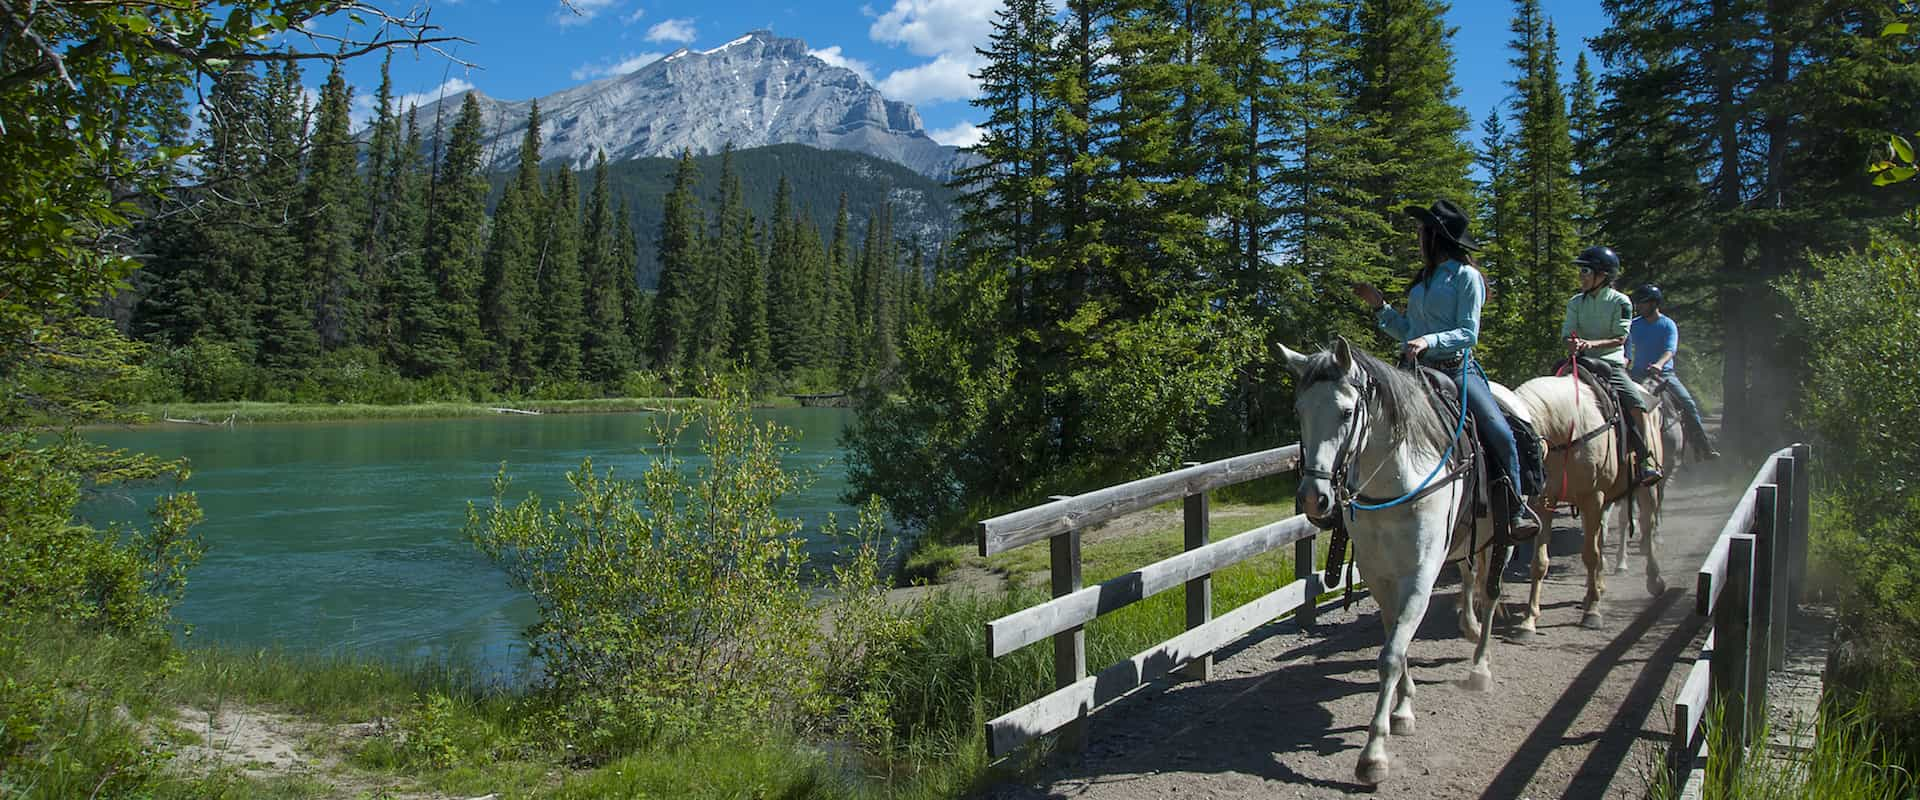 Ride along the Bow River on the Bow River Ride with Discover Banff Tours in the Canadian Rockies